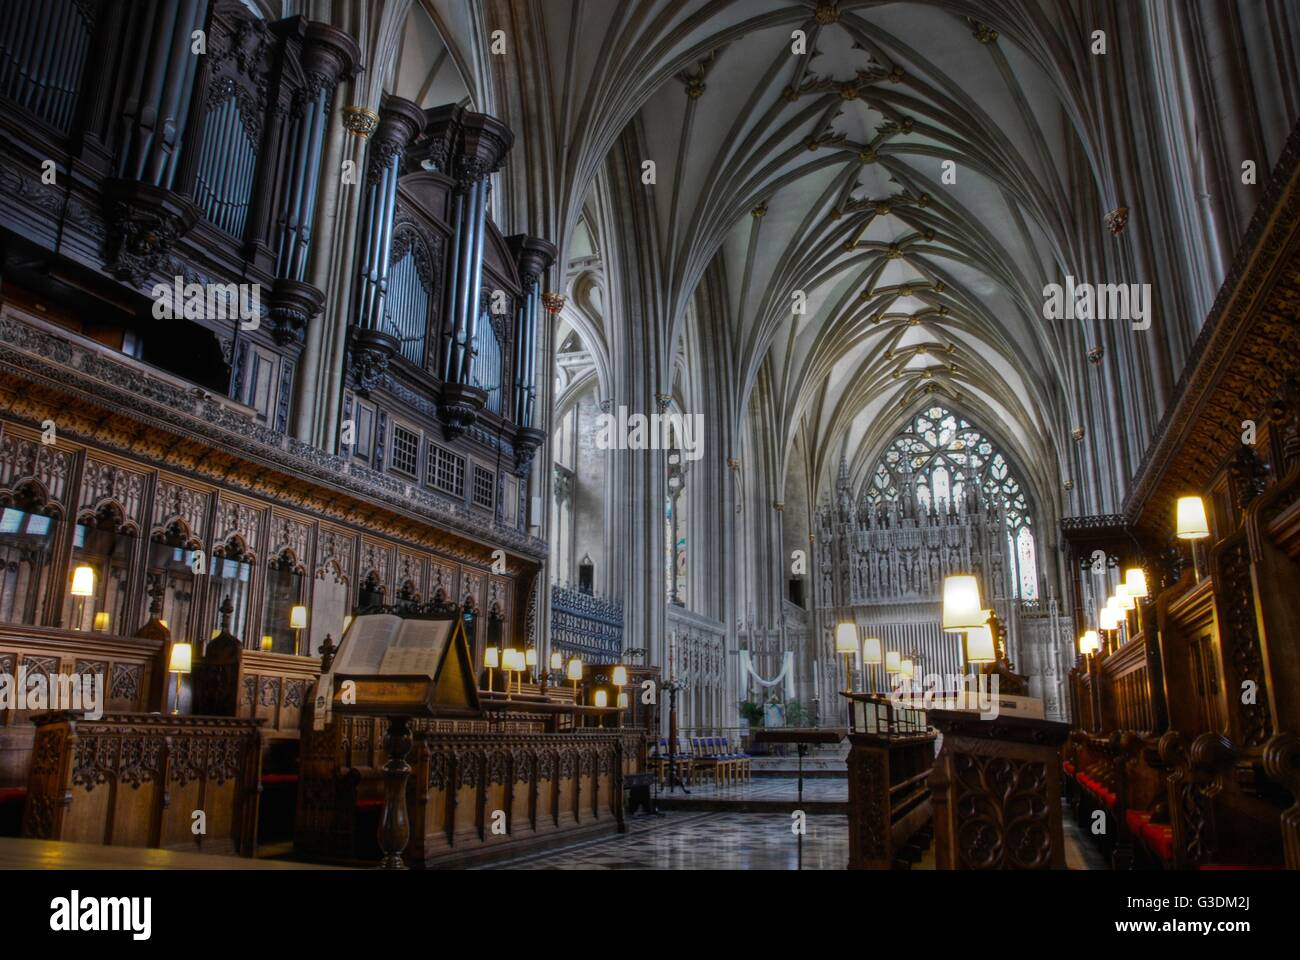 Interior shot of Bristol cathedral showing vaulting over the seating for the choir and organ pipes. - Stock Image